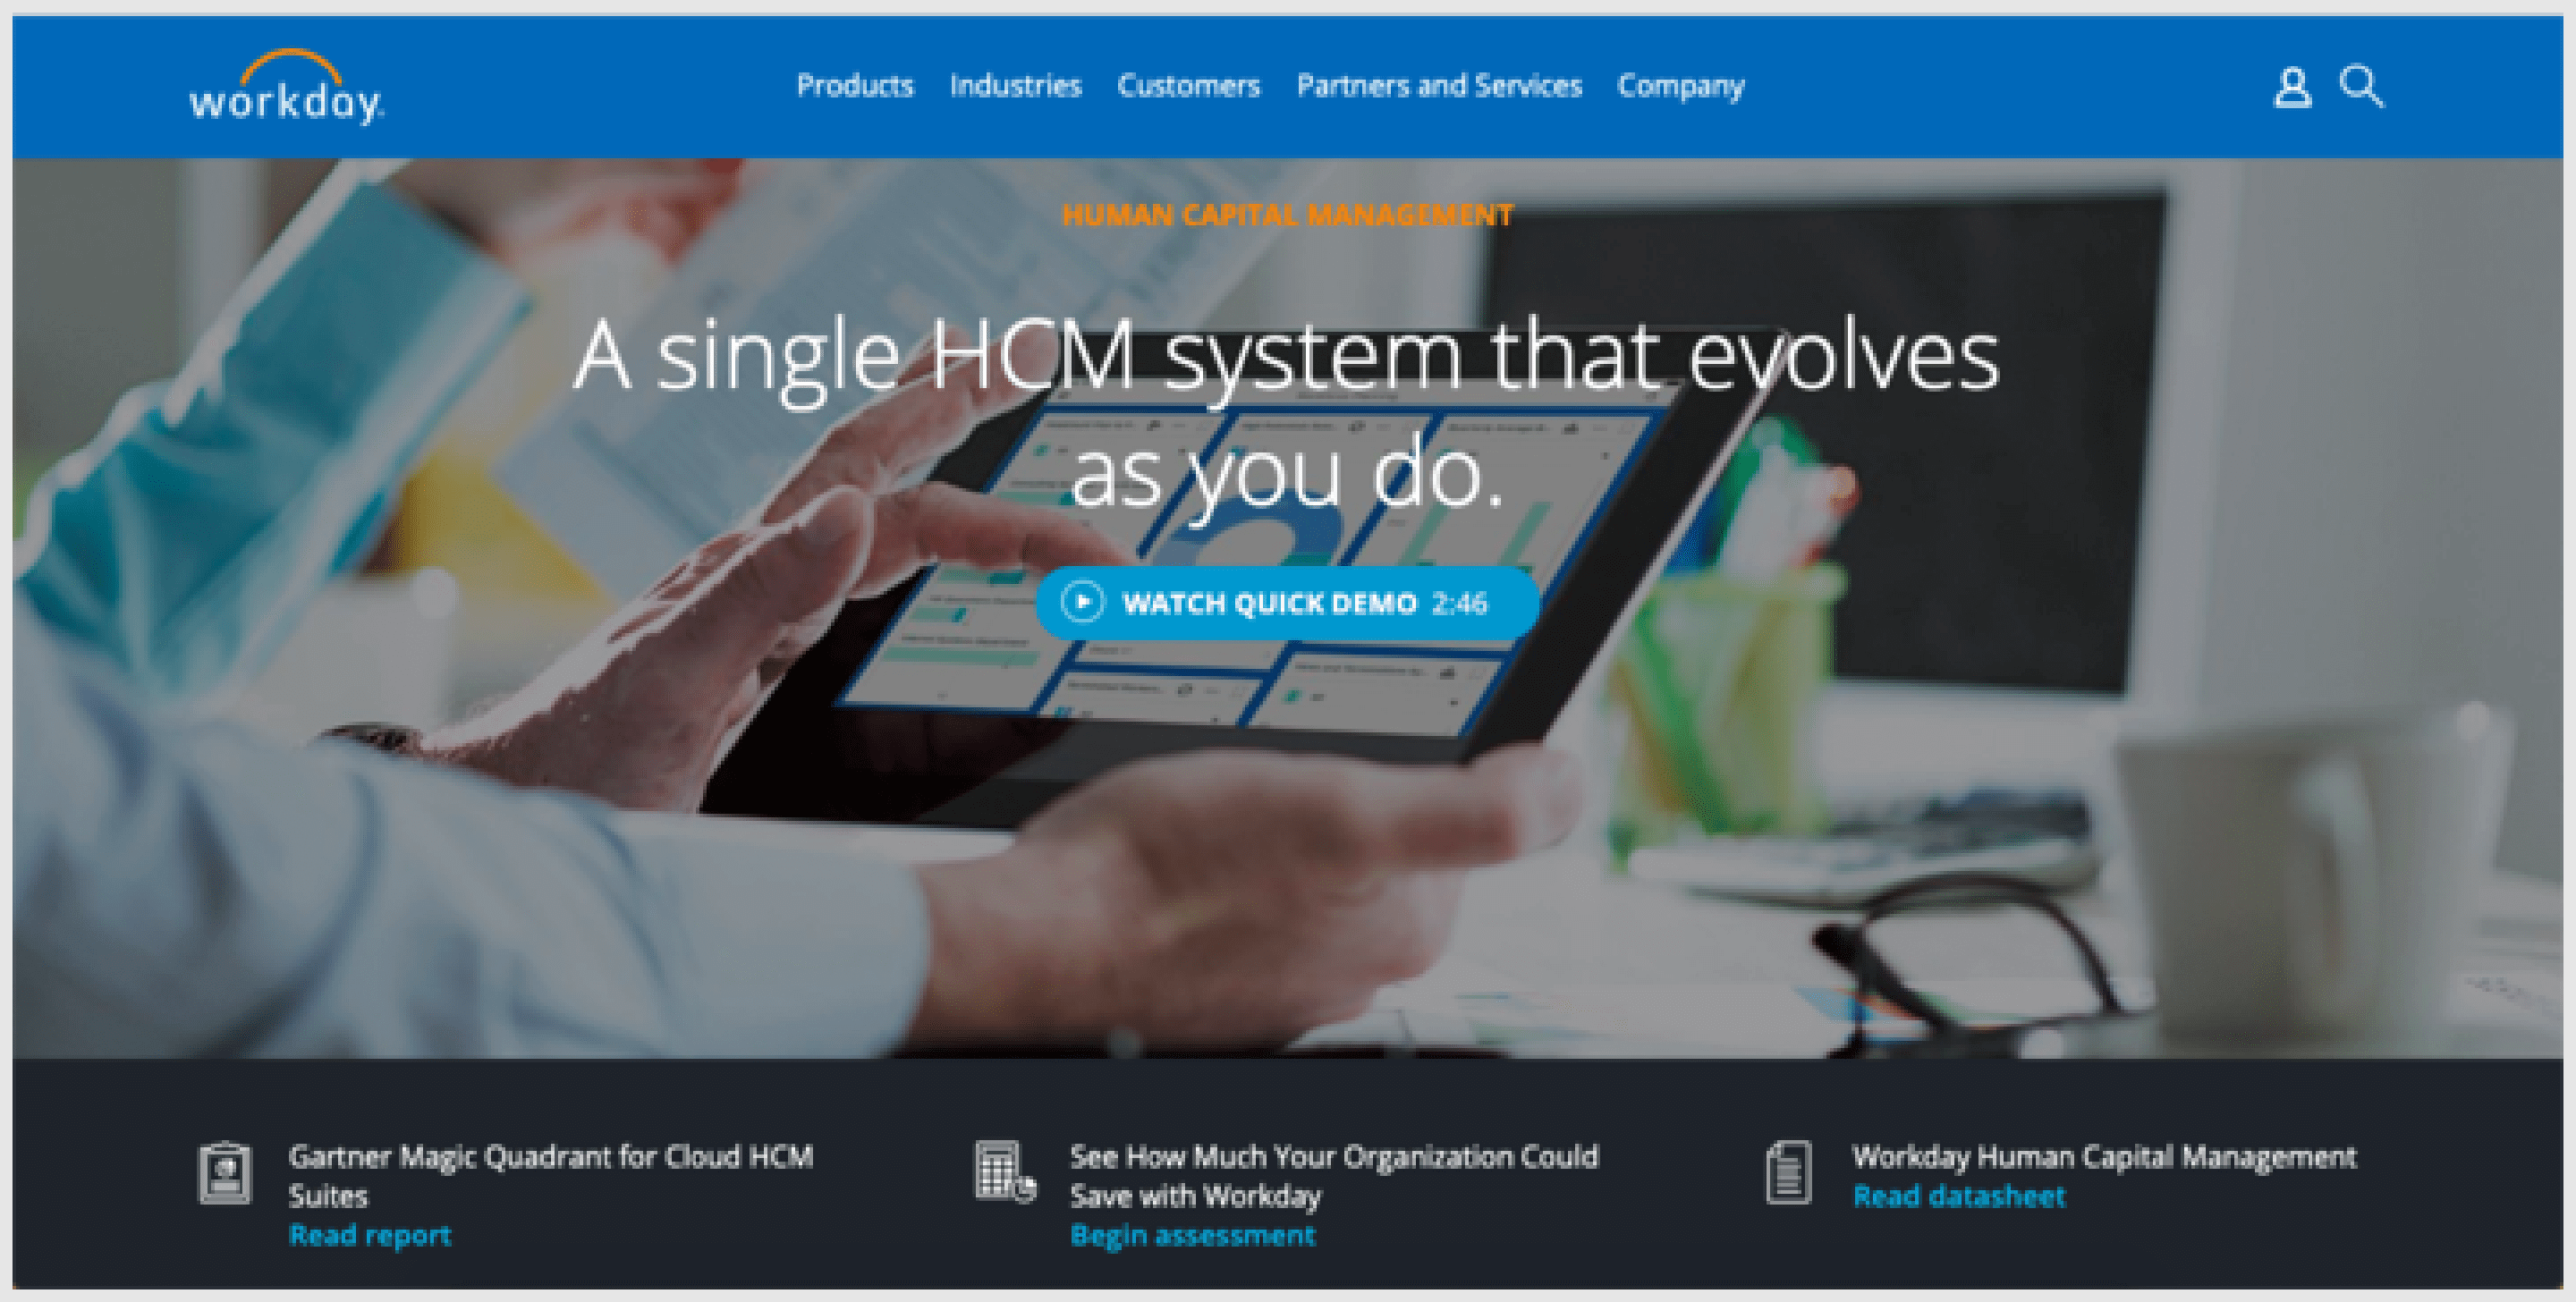 Workday HCM is a recruitment software that acts as 'a single system with a single source of data, single security model and single user experience' as stated by their team.